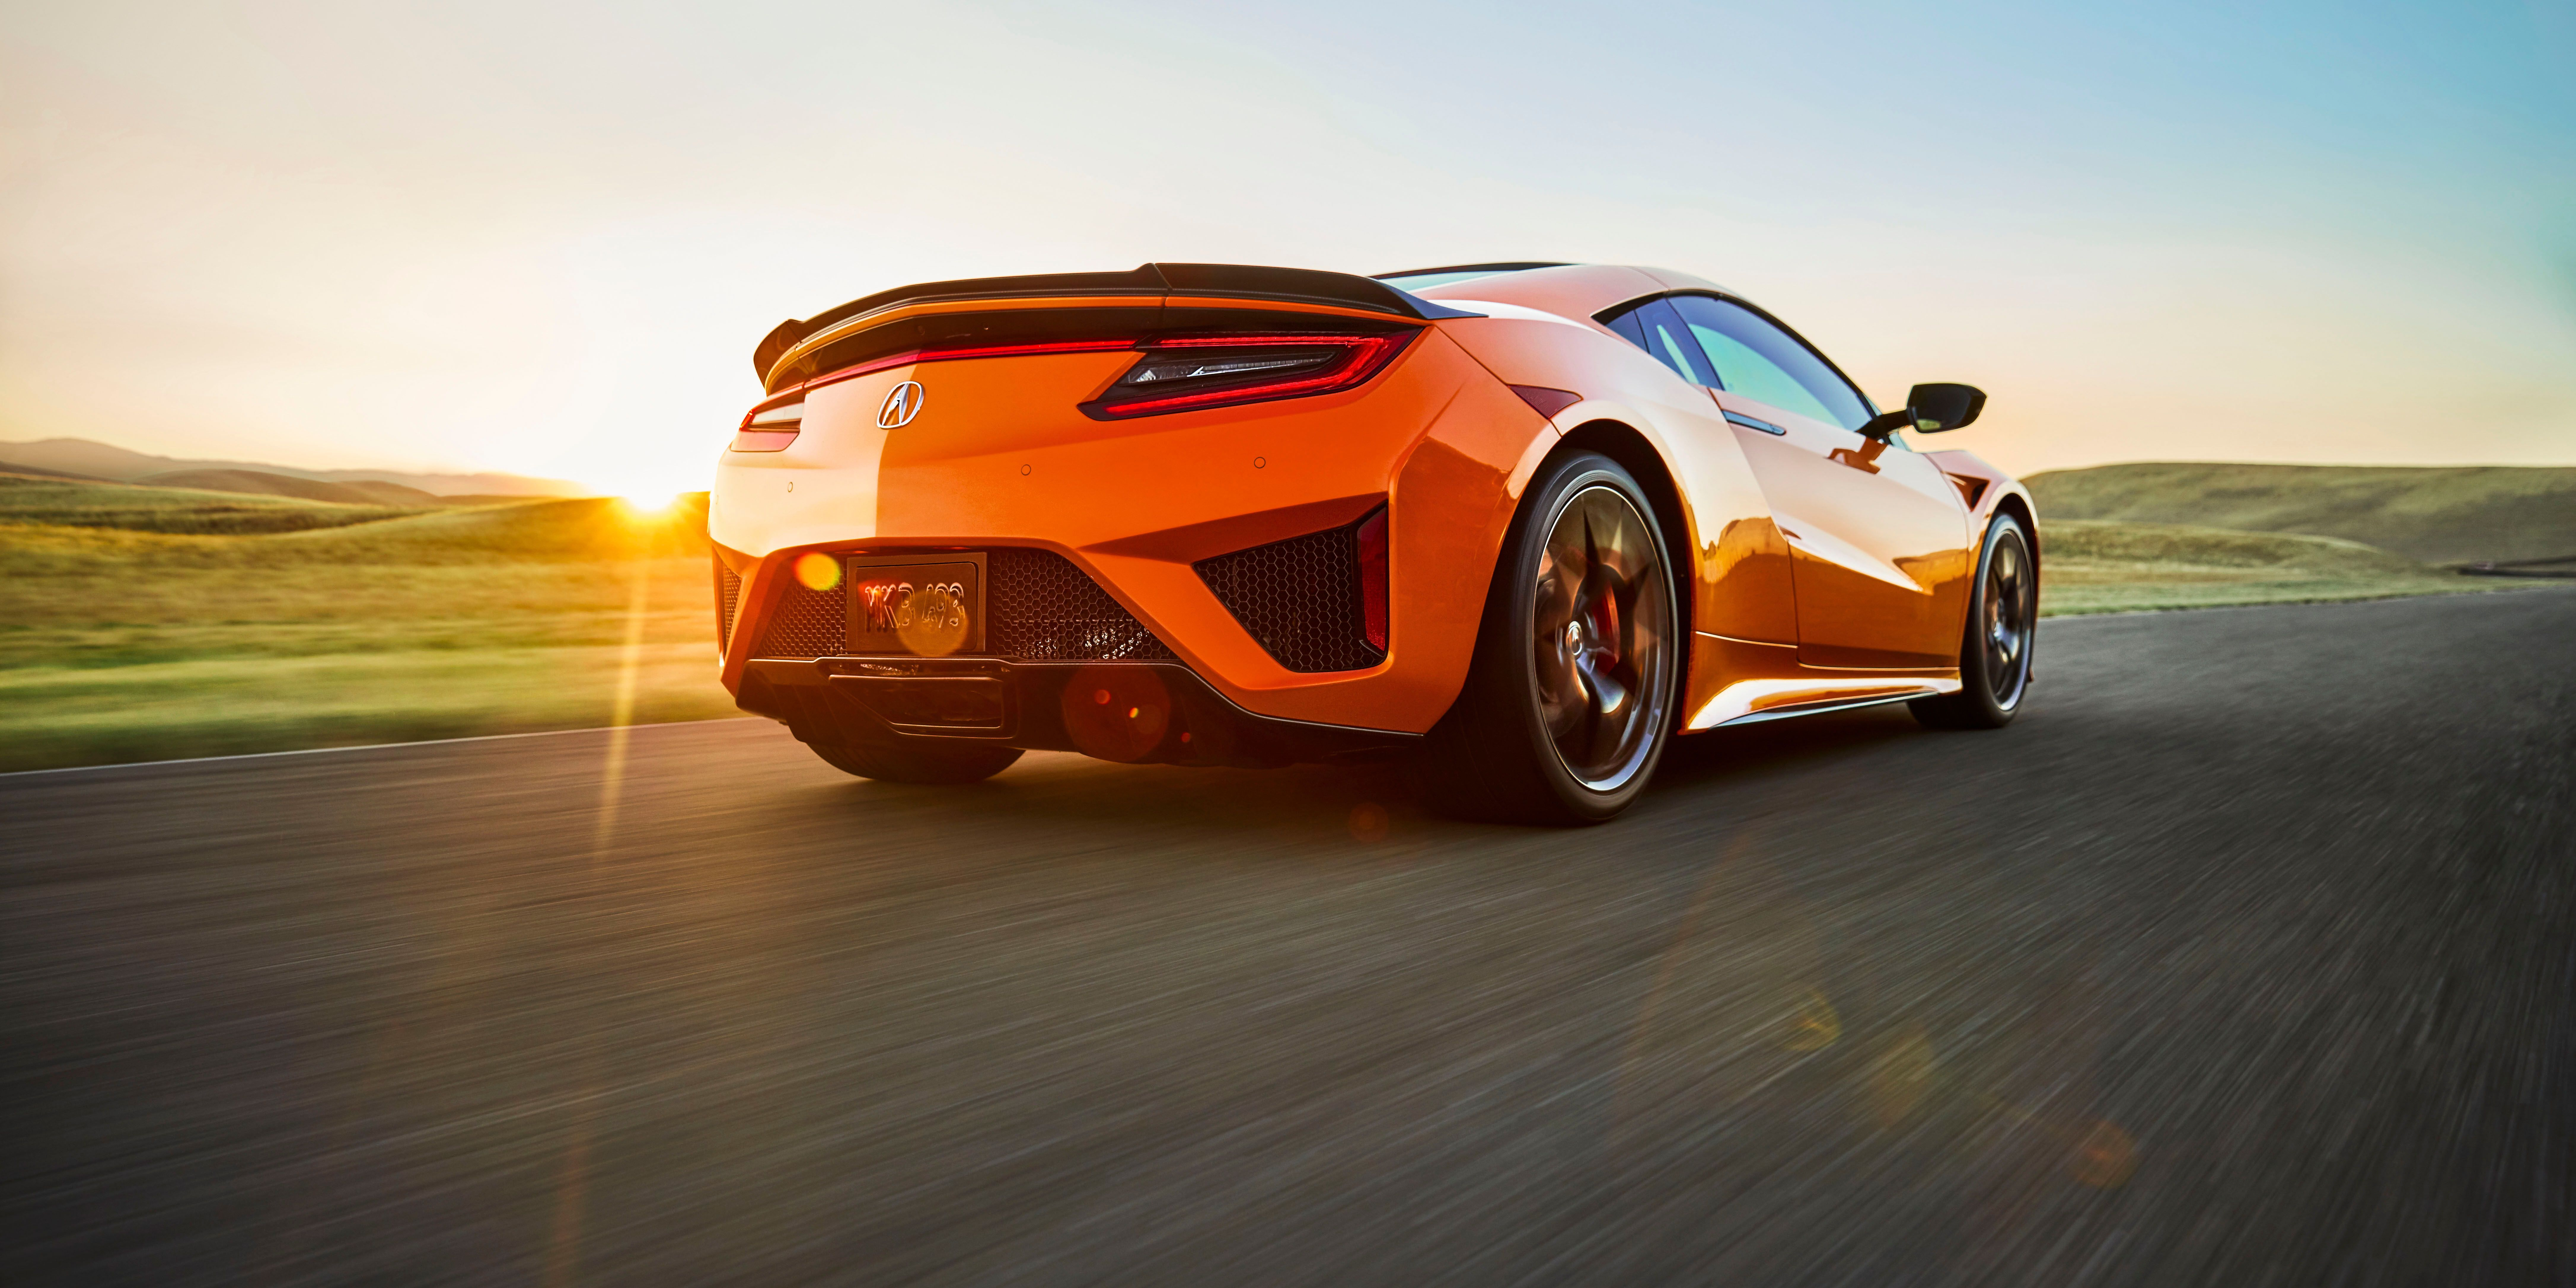 2019 Acura NSX Specs   Updated NSX Supercar Price, Horsepower, And Pictures